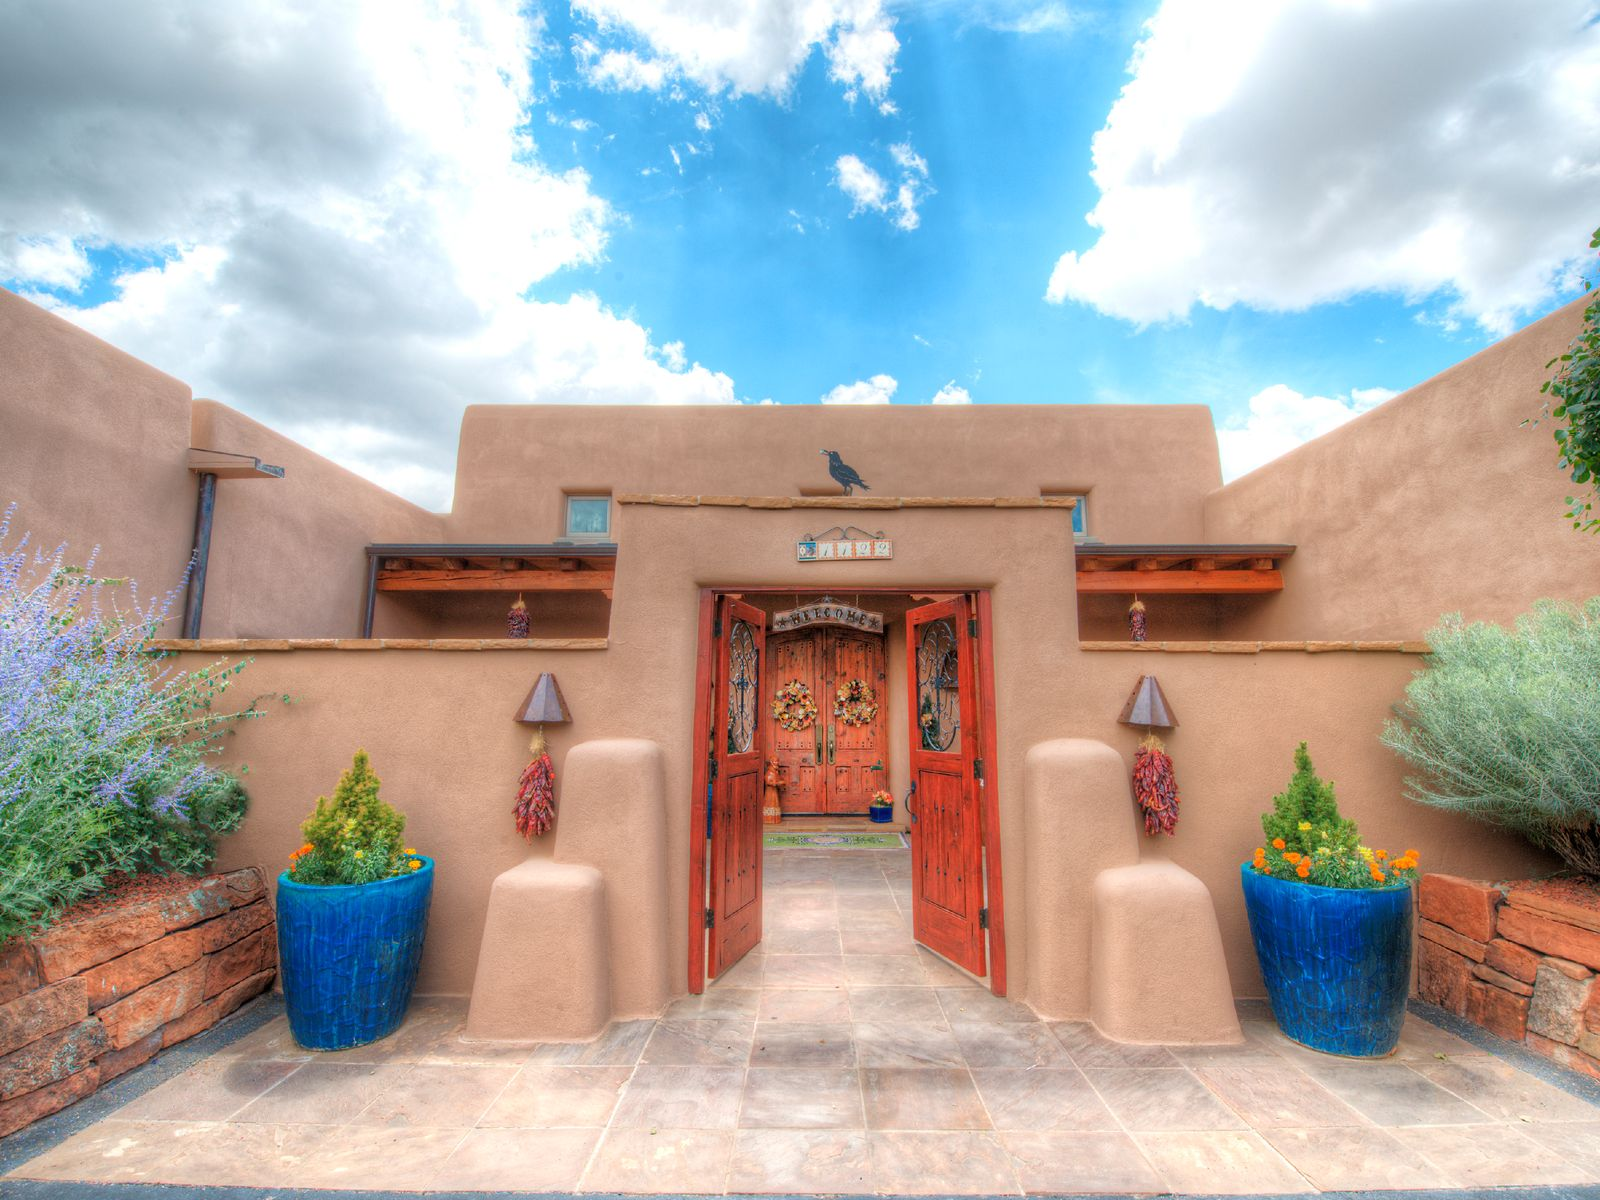 1122 Piedra Rondo, Santa Fe NM Single Family Home - Santa Fe Real Estate